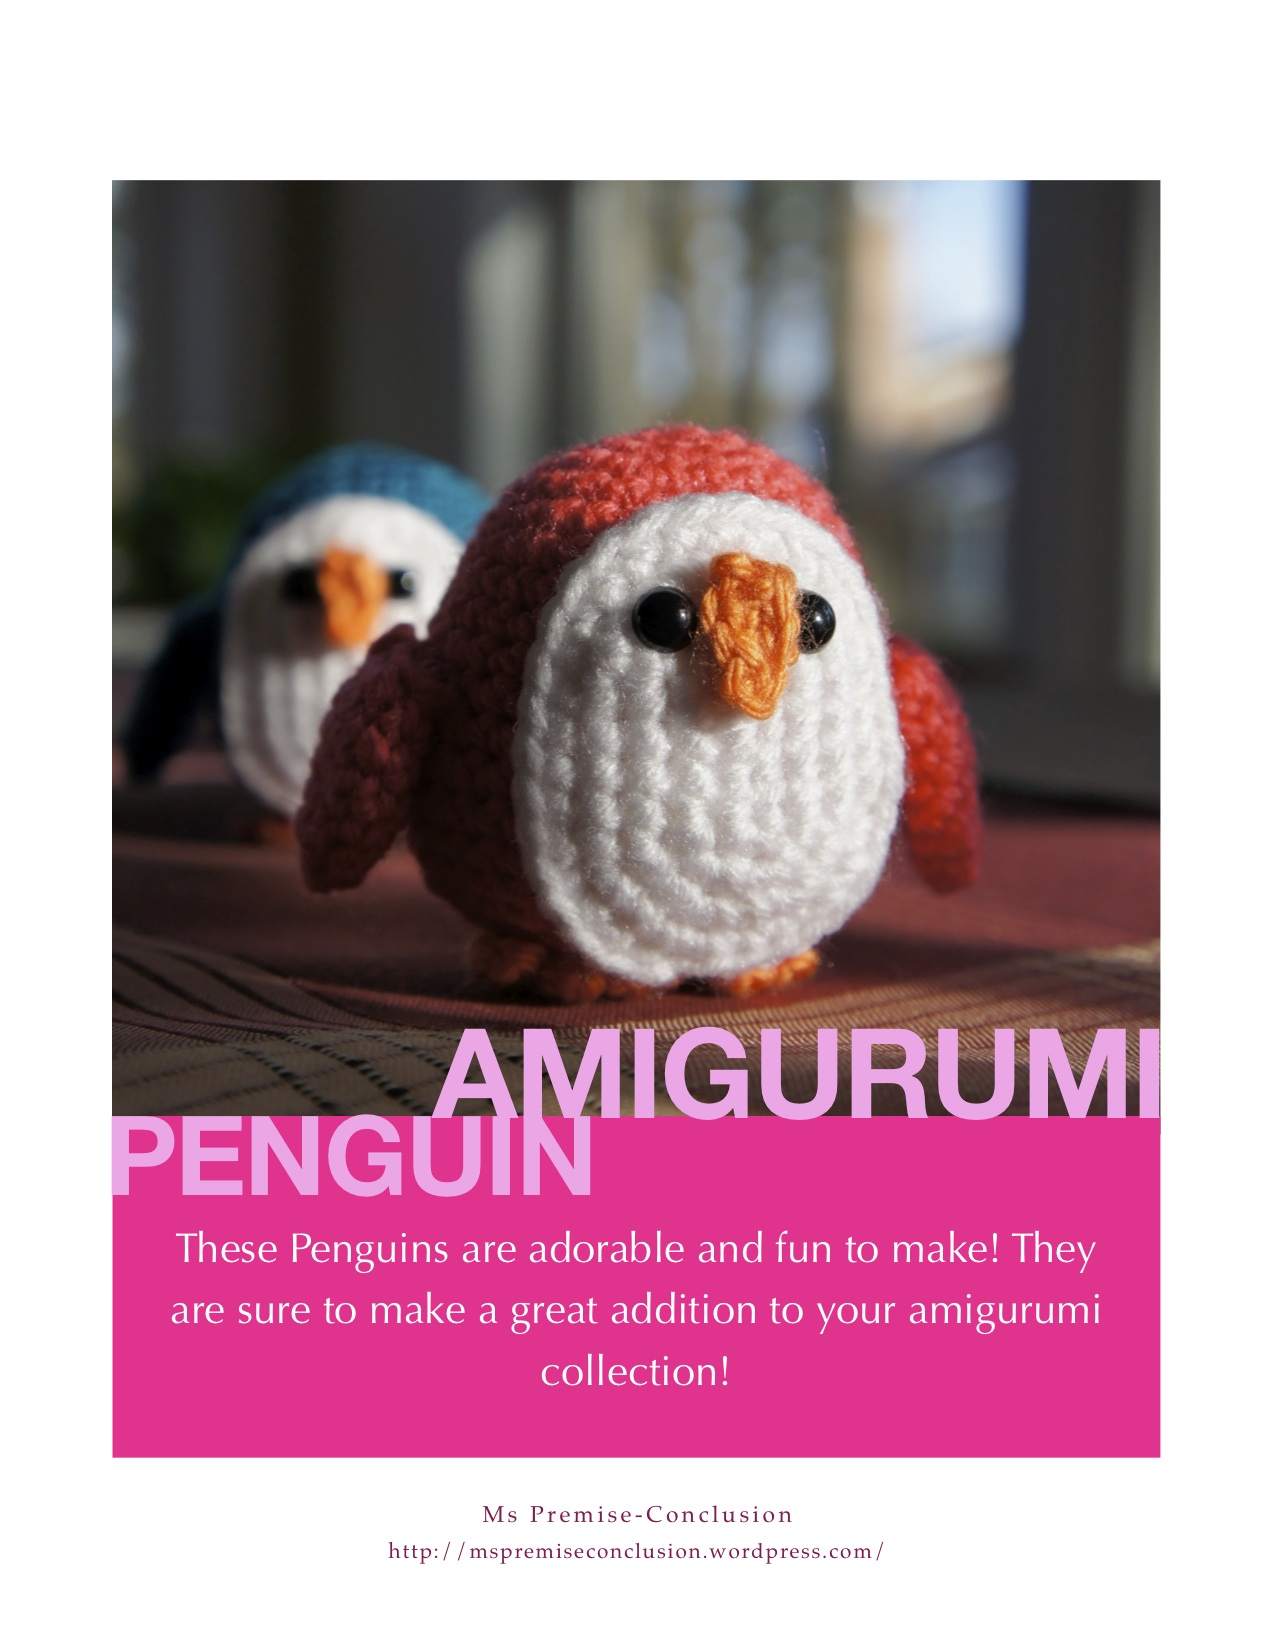 Amigurumi Penguin Pattern : Penguin Pattern Time Ms Premise-Conclusion